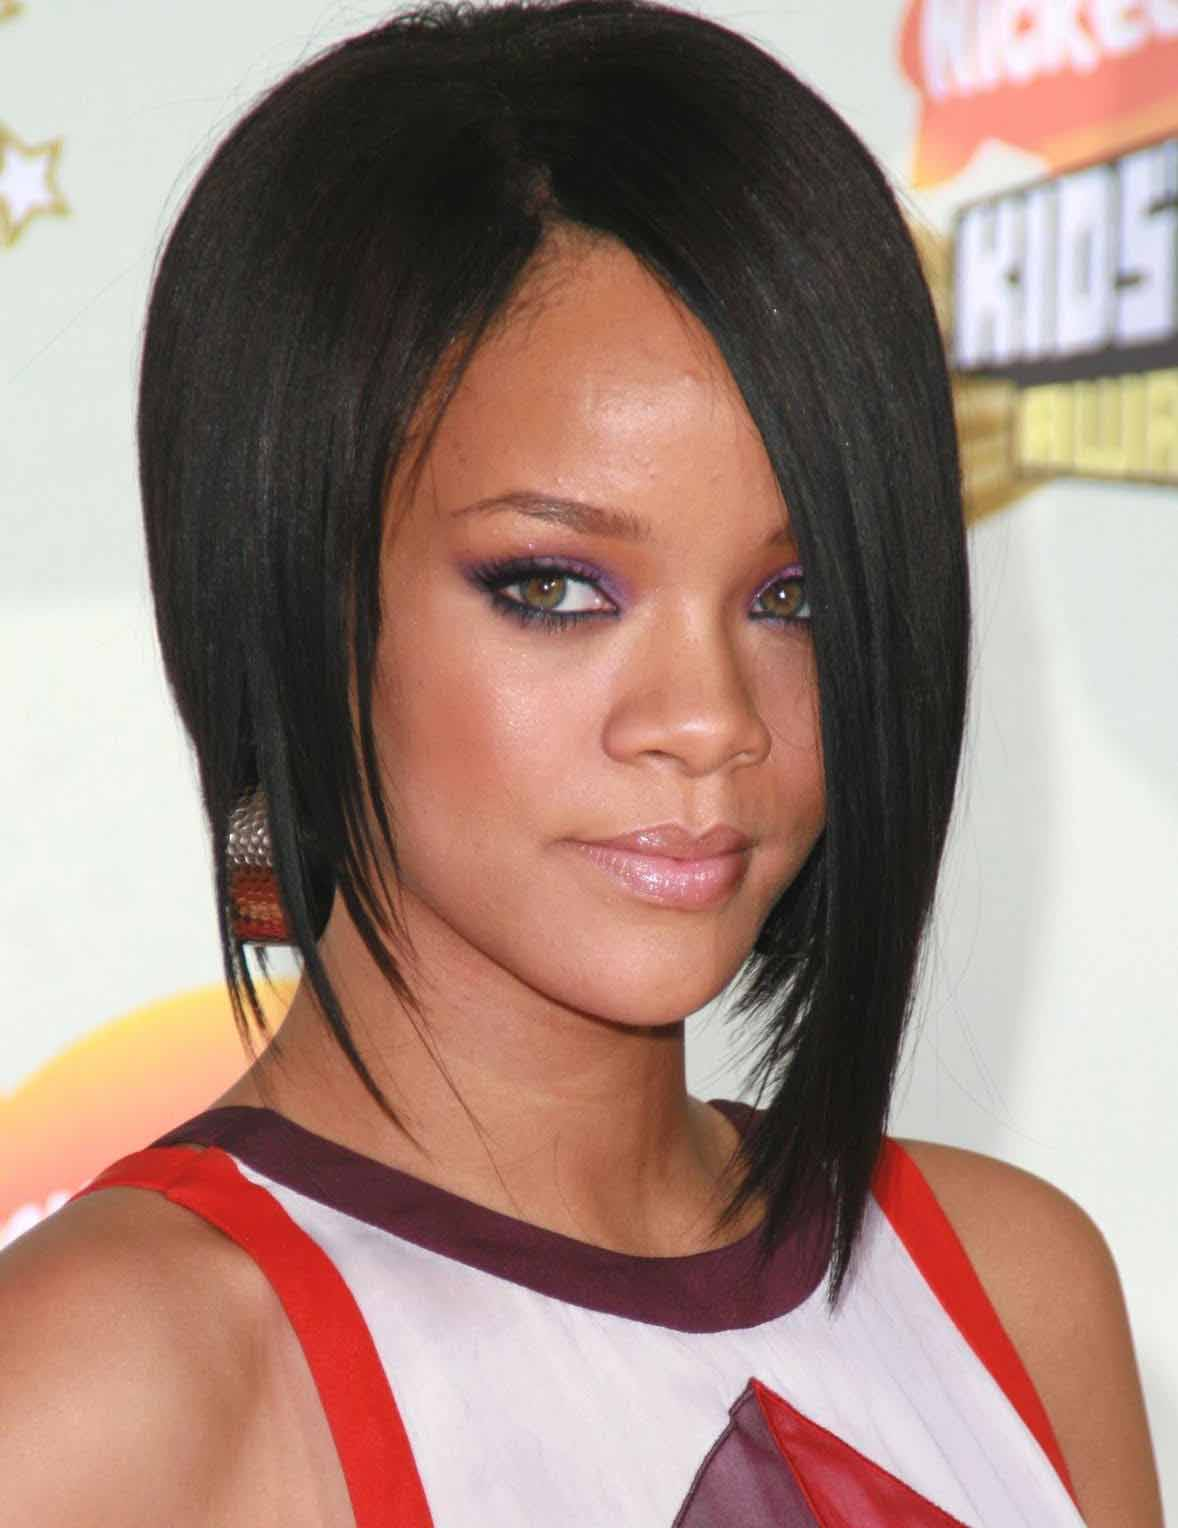 Hairstyles Big Forehead : Best Hairstyles for Big Foreheads